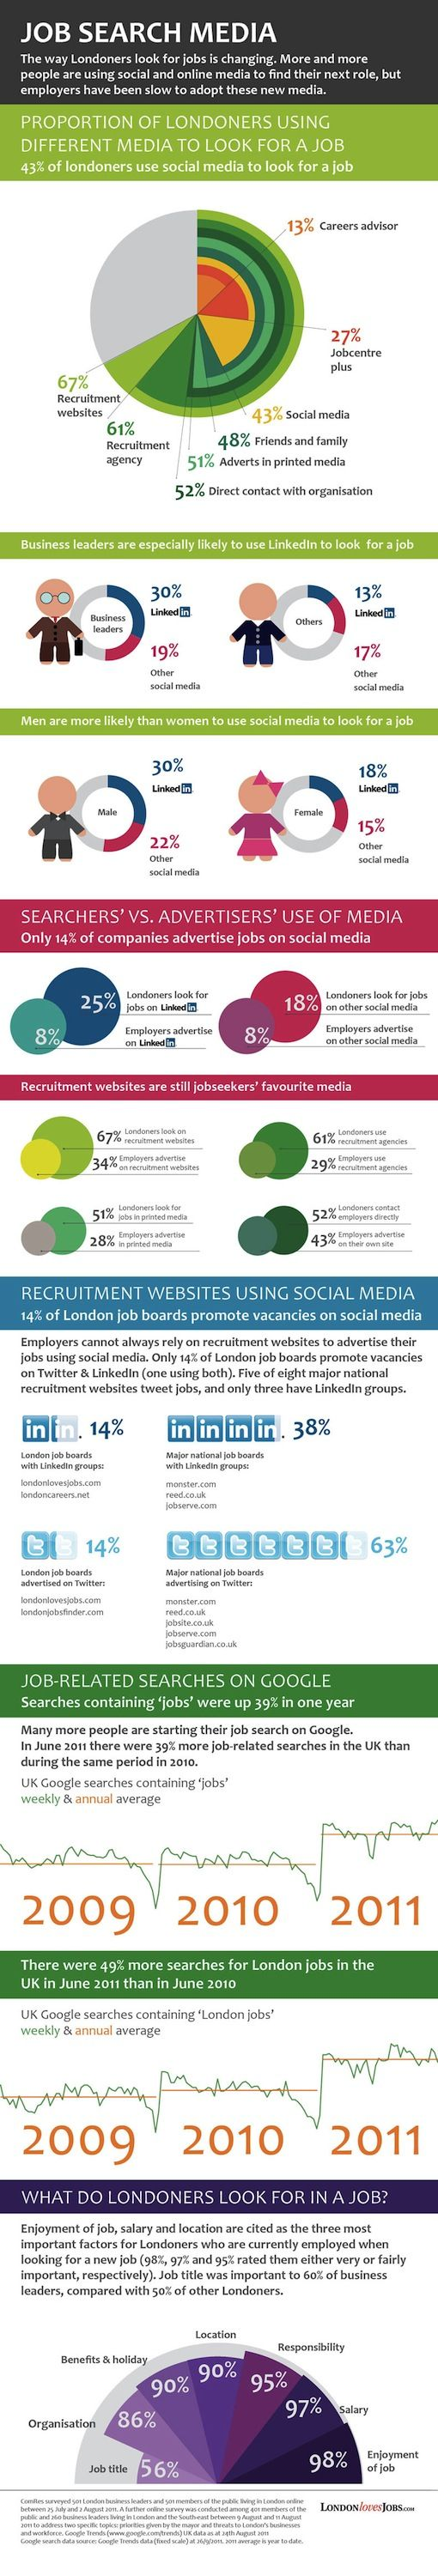 are you using social media in your job search heres how it works - Online Job Search Mistakes To Avoid Mind Your Online Profile